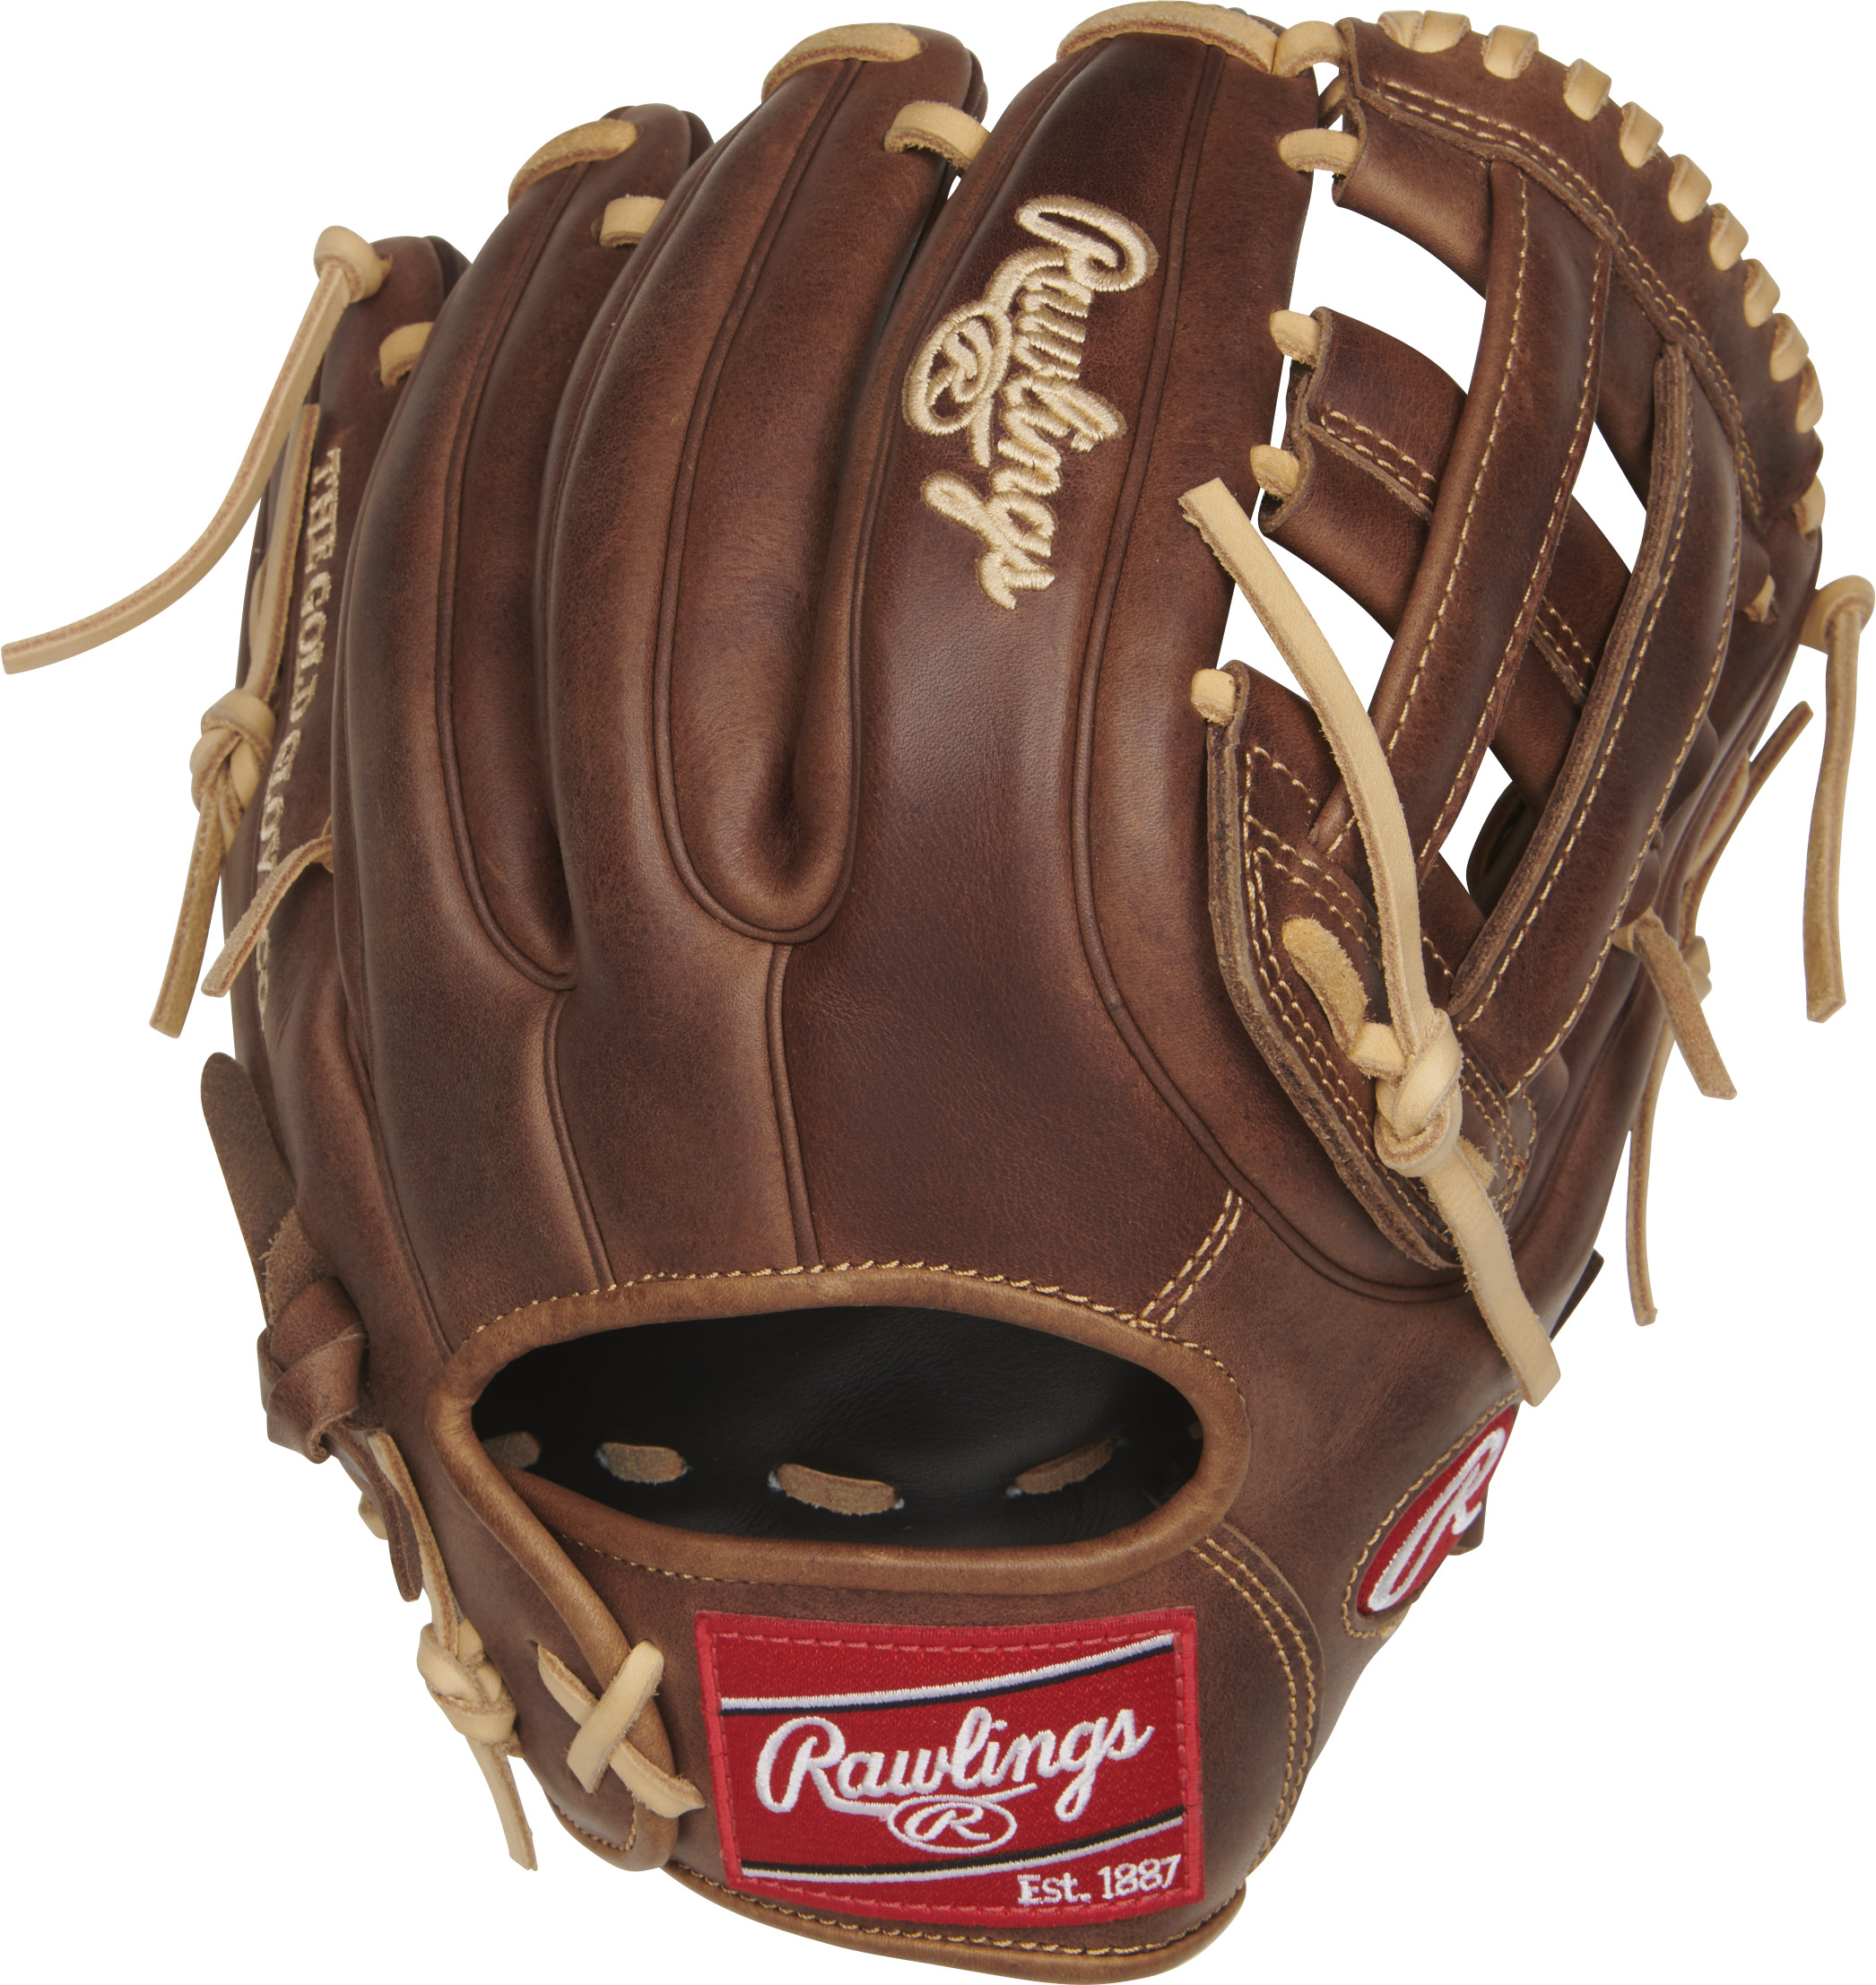 http://www.bestbatdeals.com/images/gloves/rawlings/PRO315SB-6SL-2.jpg